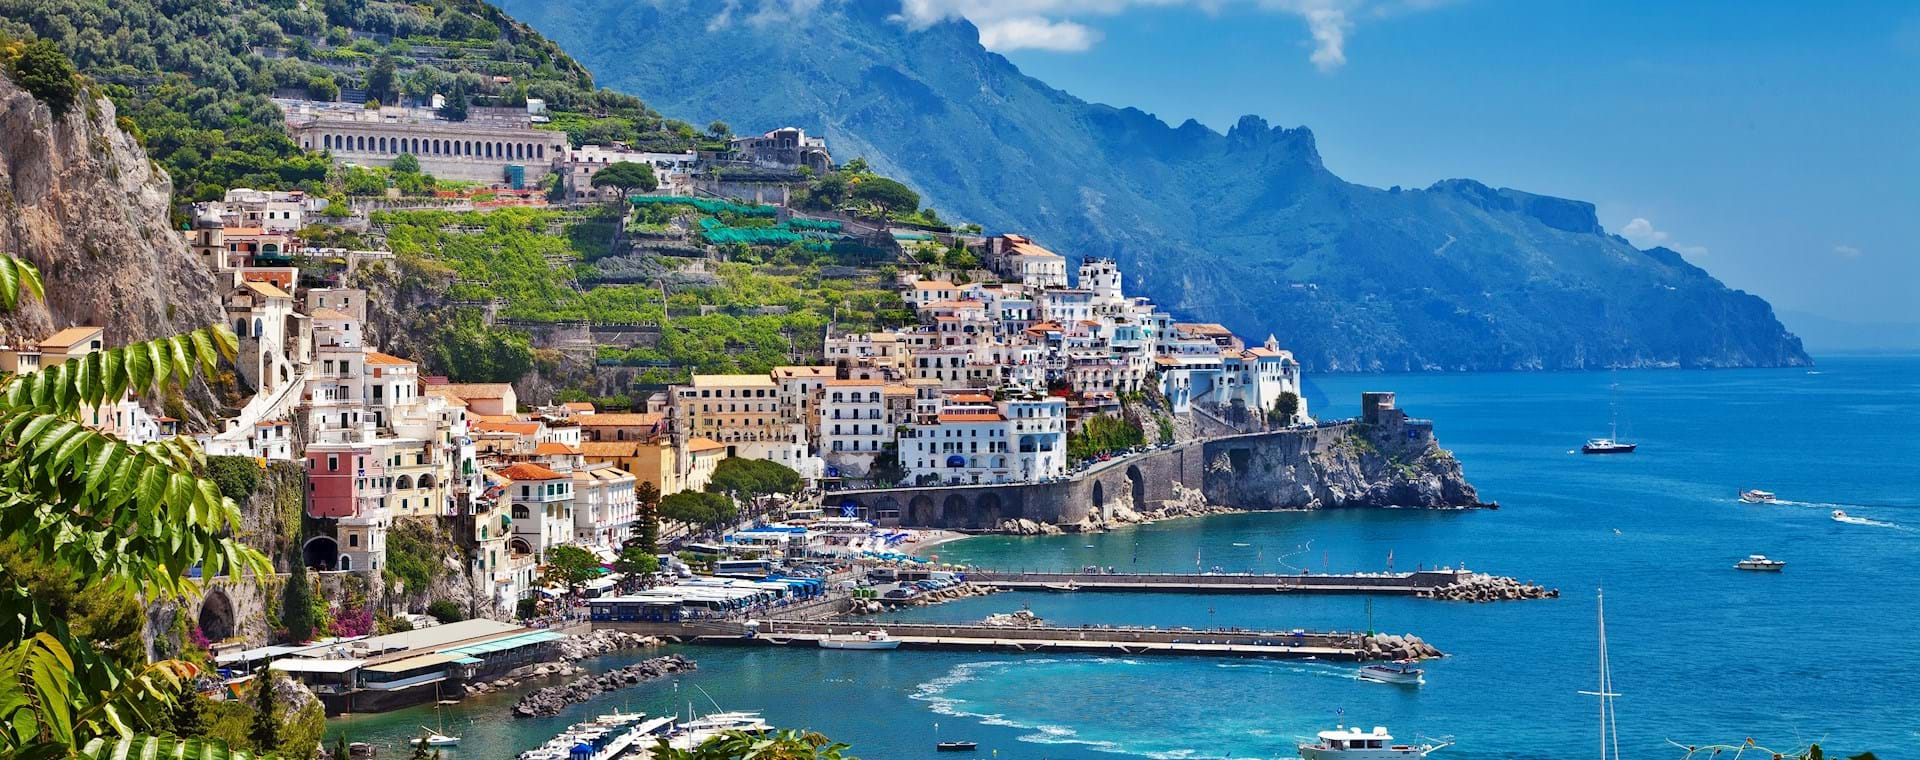 Day Trip: VIP Amalfi Coast Tour from Rome by High-Speed Train